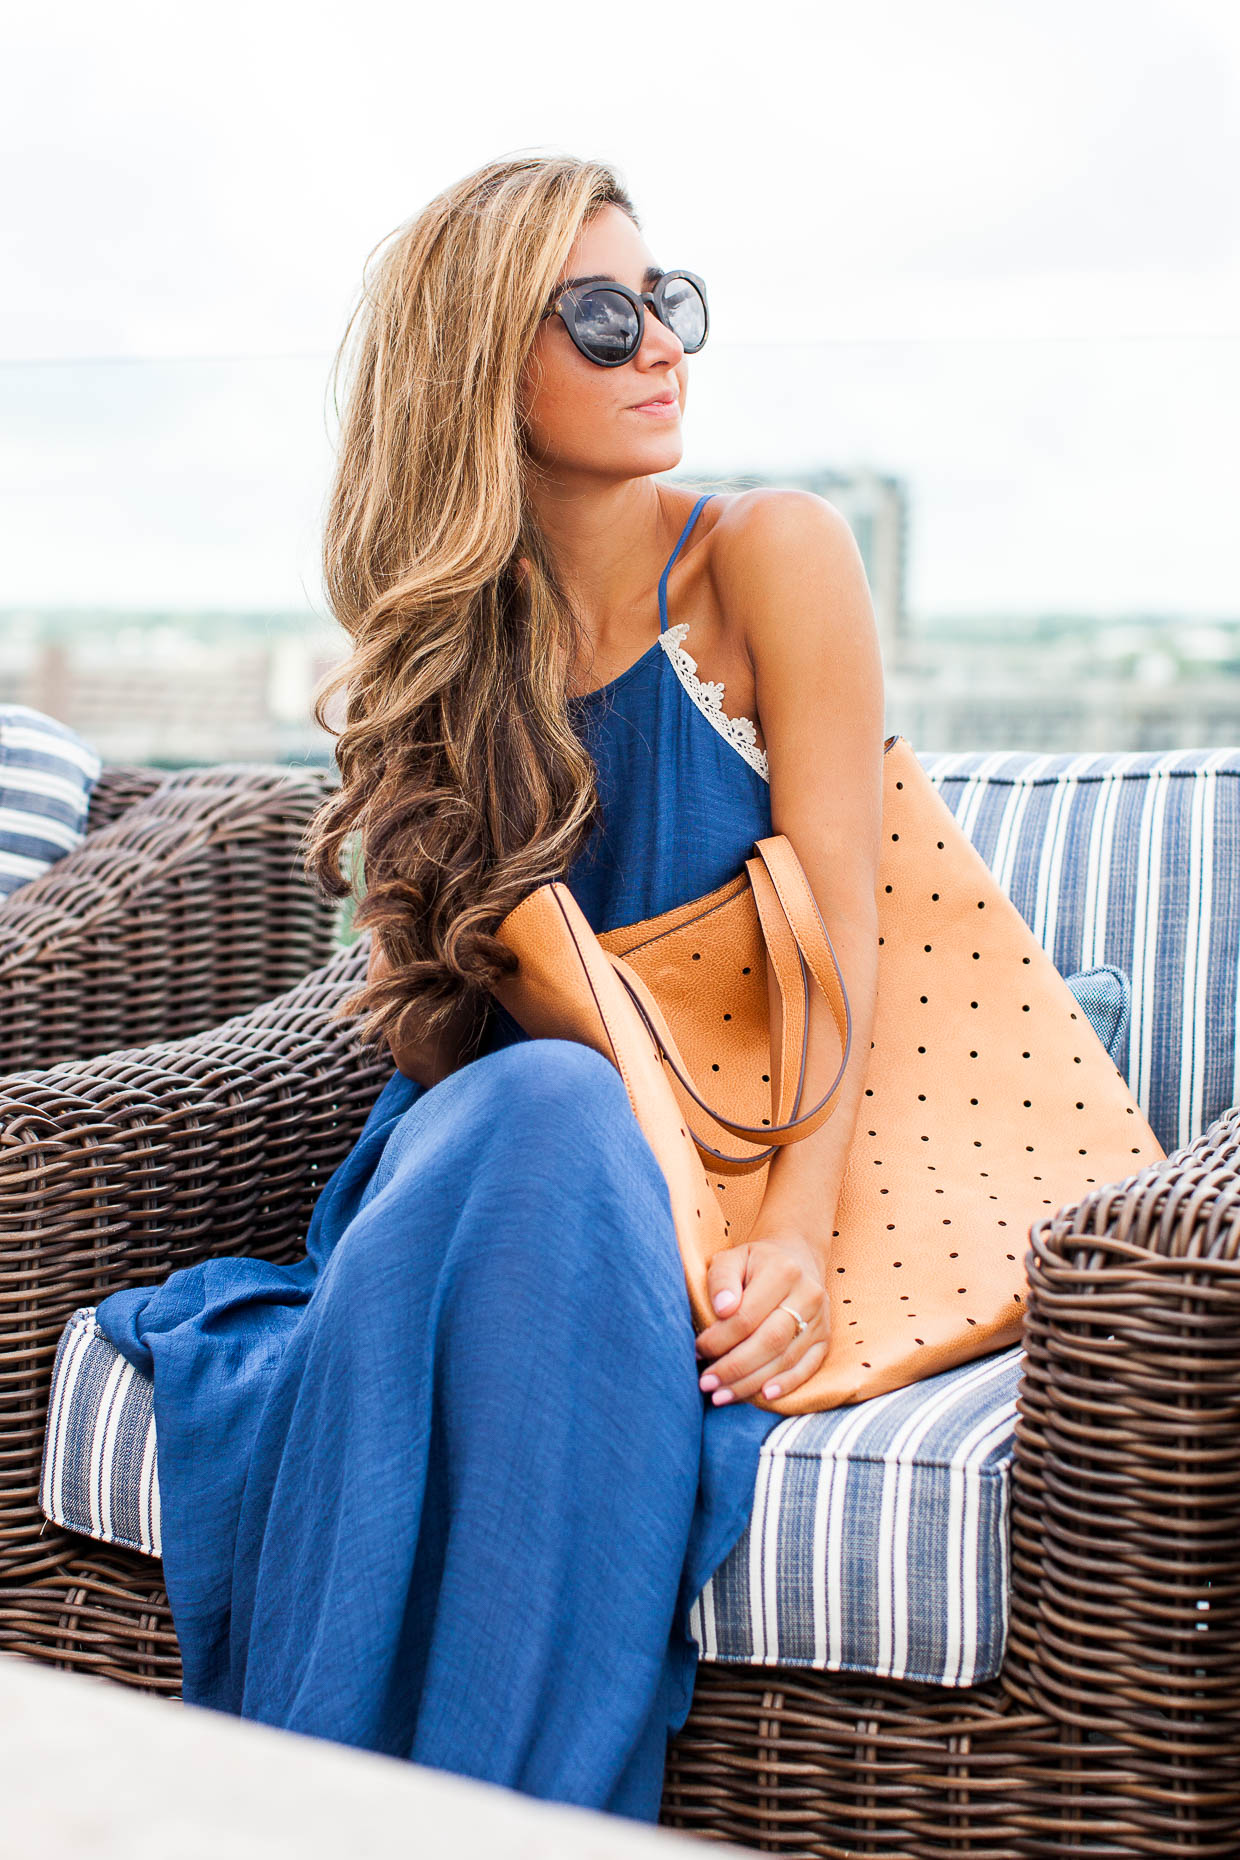 Fashion Blogger The Darling Detail is wearing a Love Squared Crochet Trim Maxi Dress, along with the Sole Society Farrow Tote and Garey Cateye Sunnies.